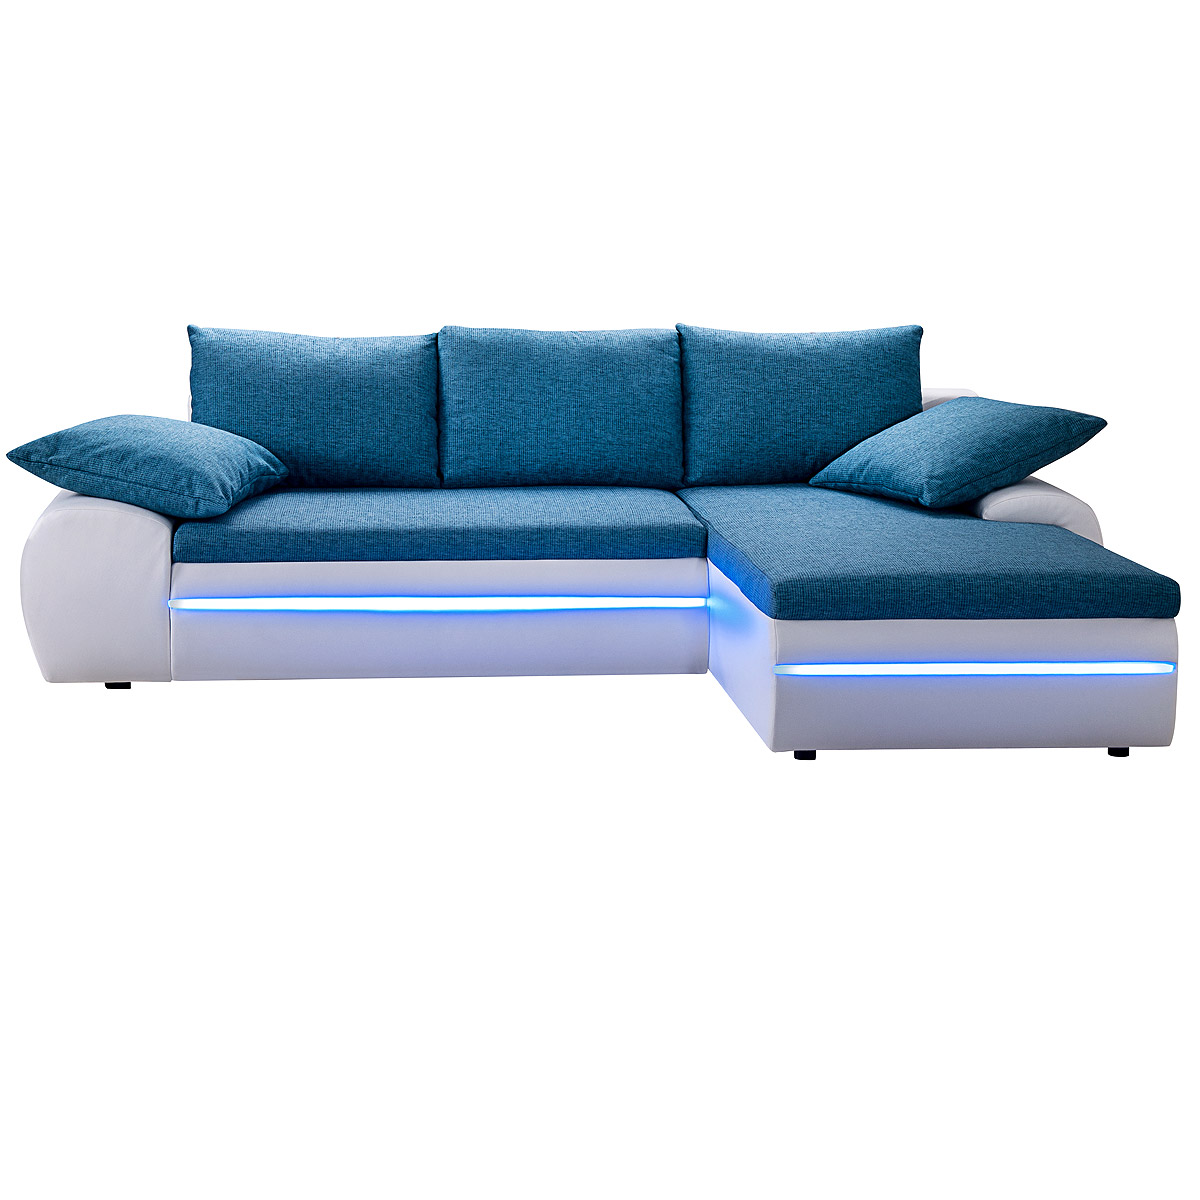 ecksofa mit led fabulous gnstige sofas schweiz con kleines ecksofa mit with ecksofa mit led. Black Bedroom Furniture Sets. Home Design Ideas